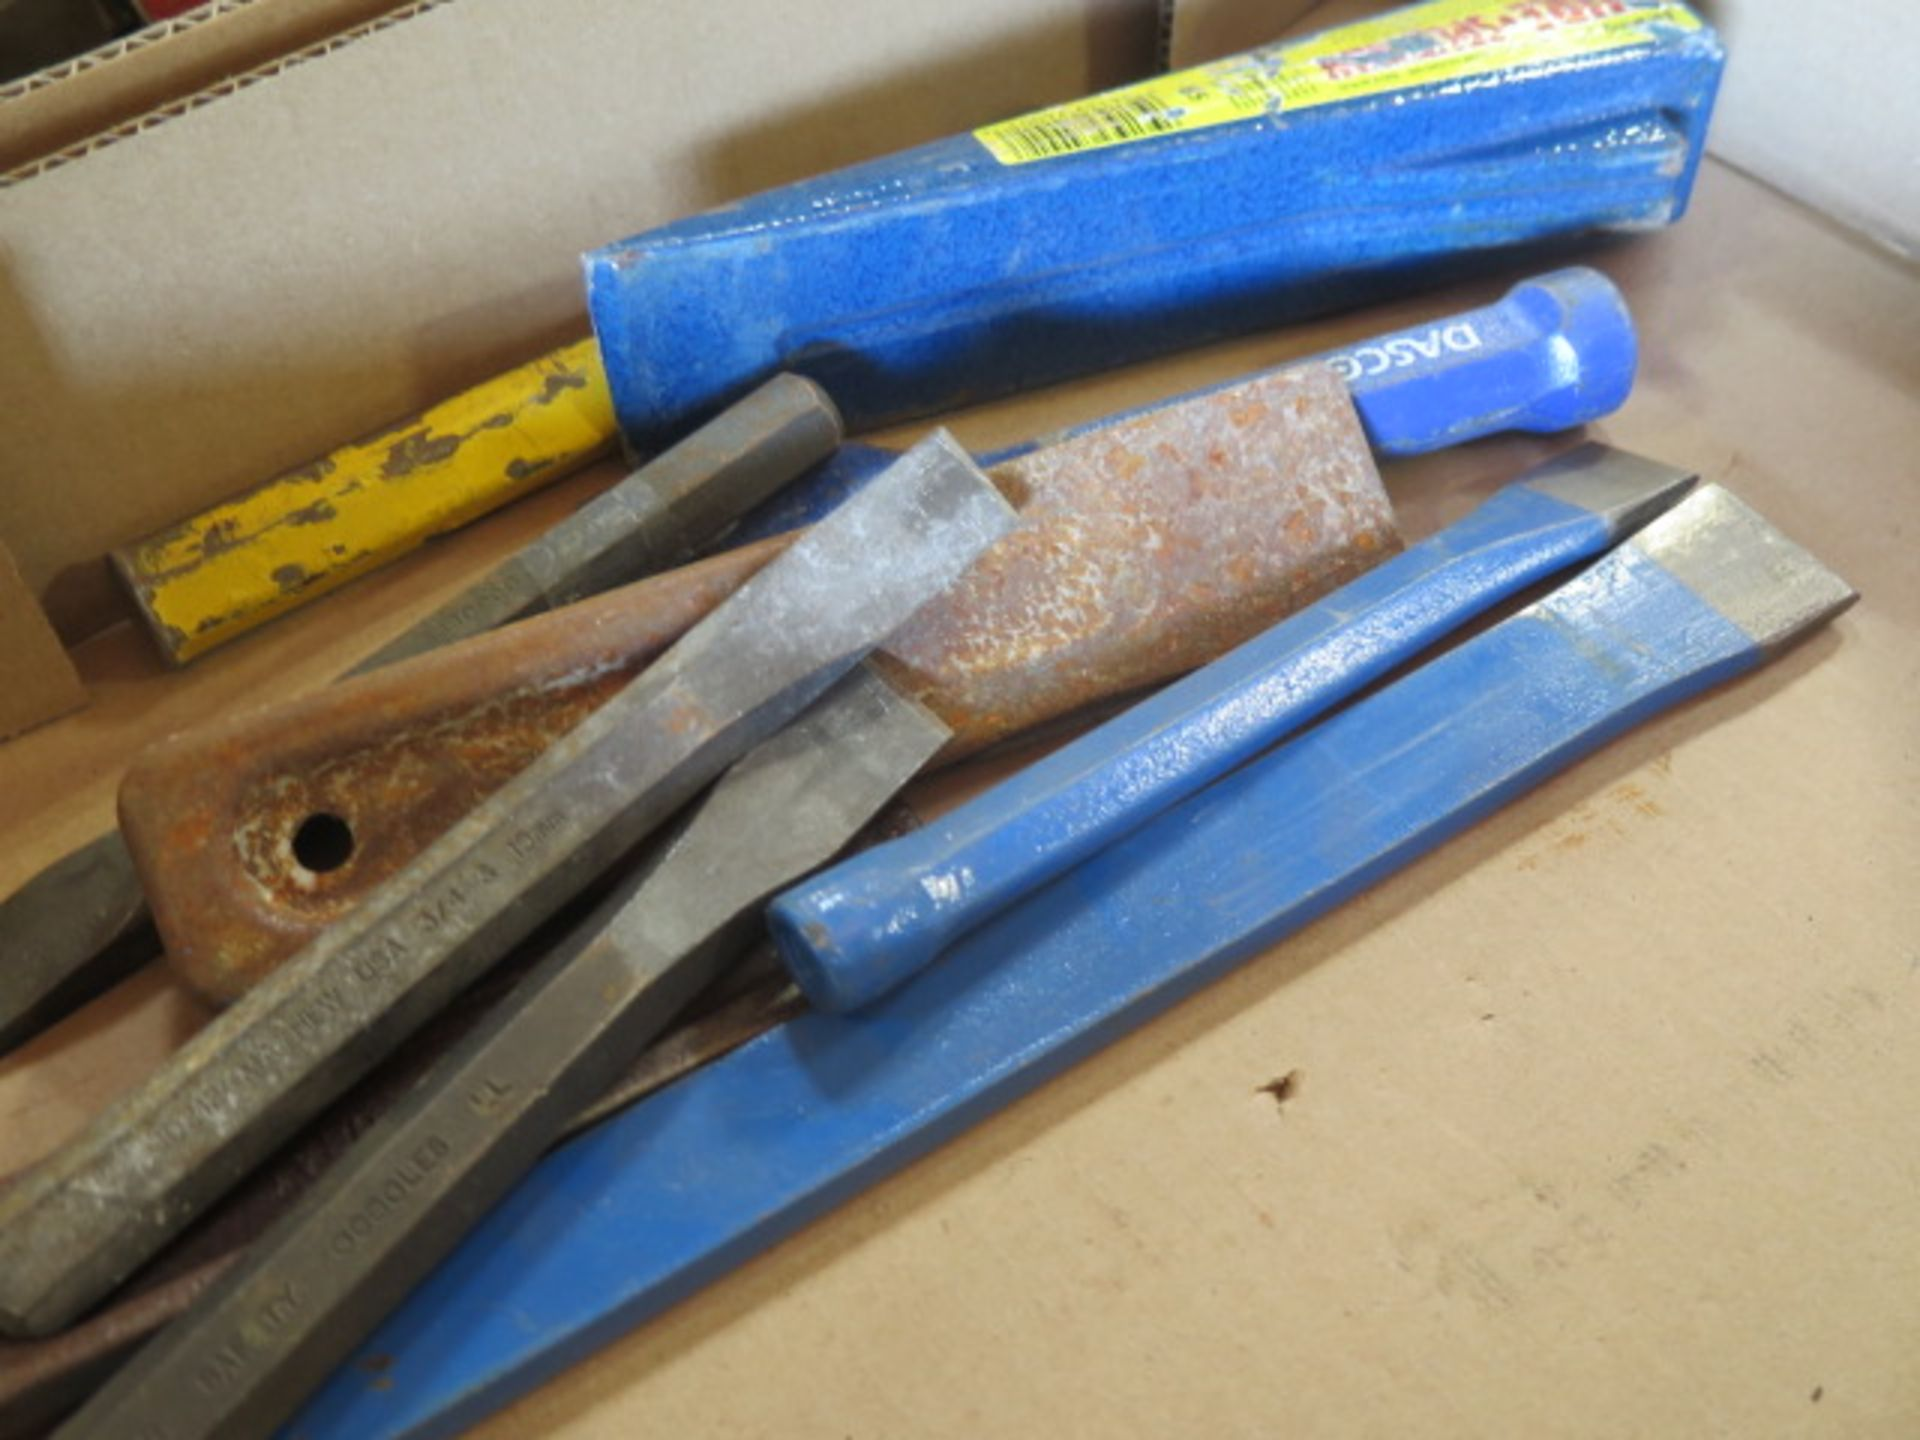 Chisels and Wedges (SOLD AS-IS - NO WARRANTY) - Image 3 of 3